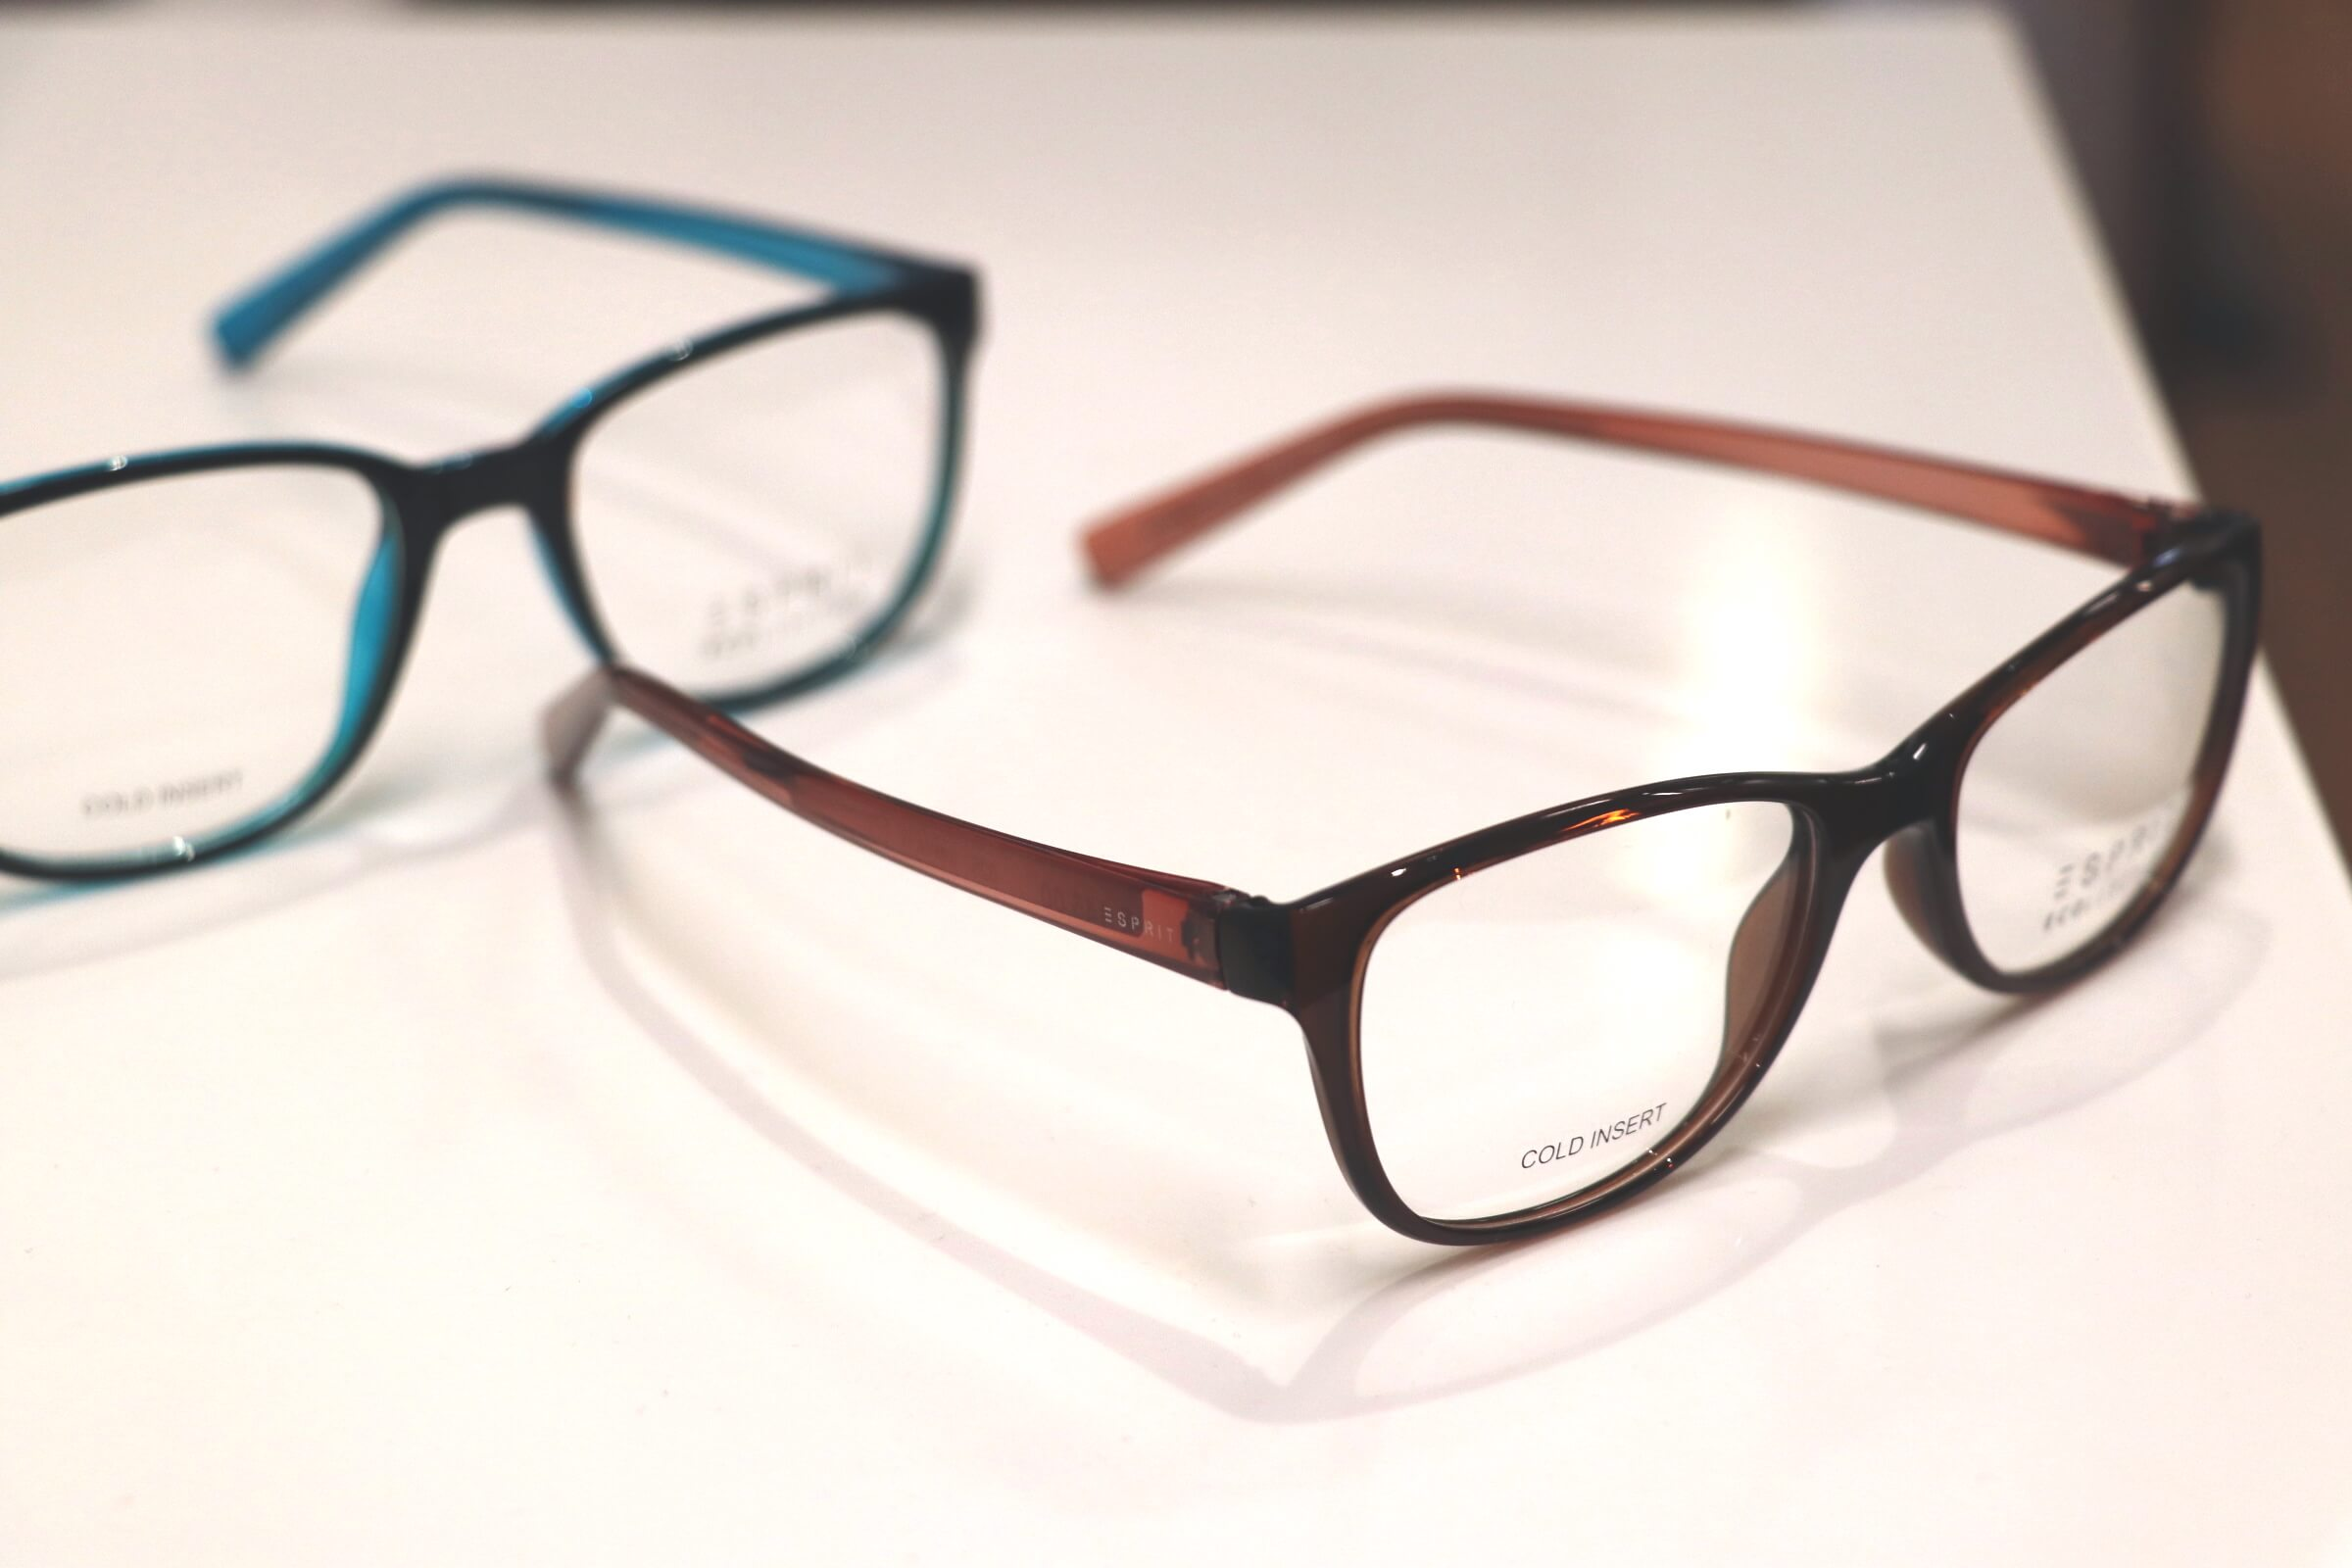 Brille aus Ecollection von Esprit